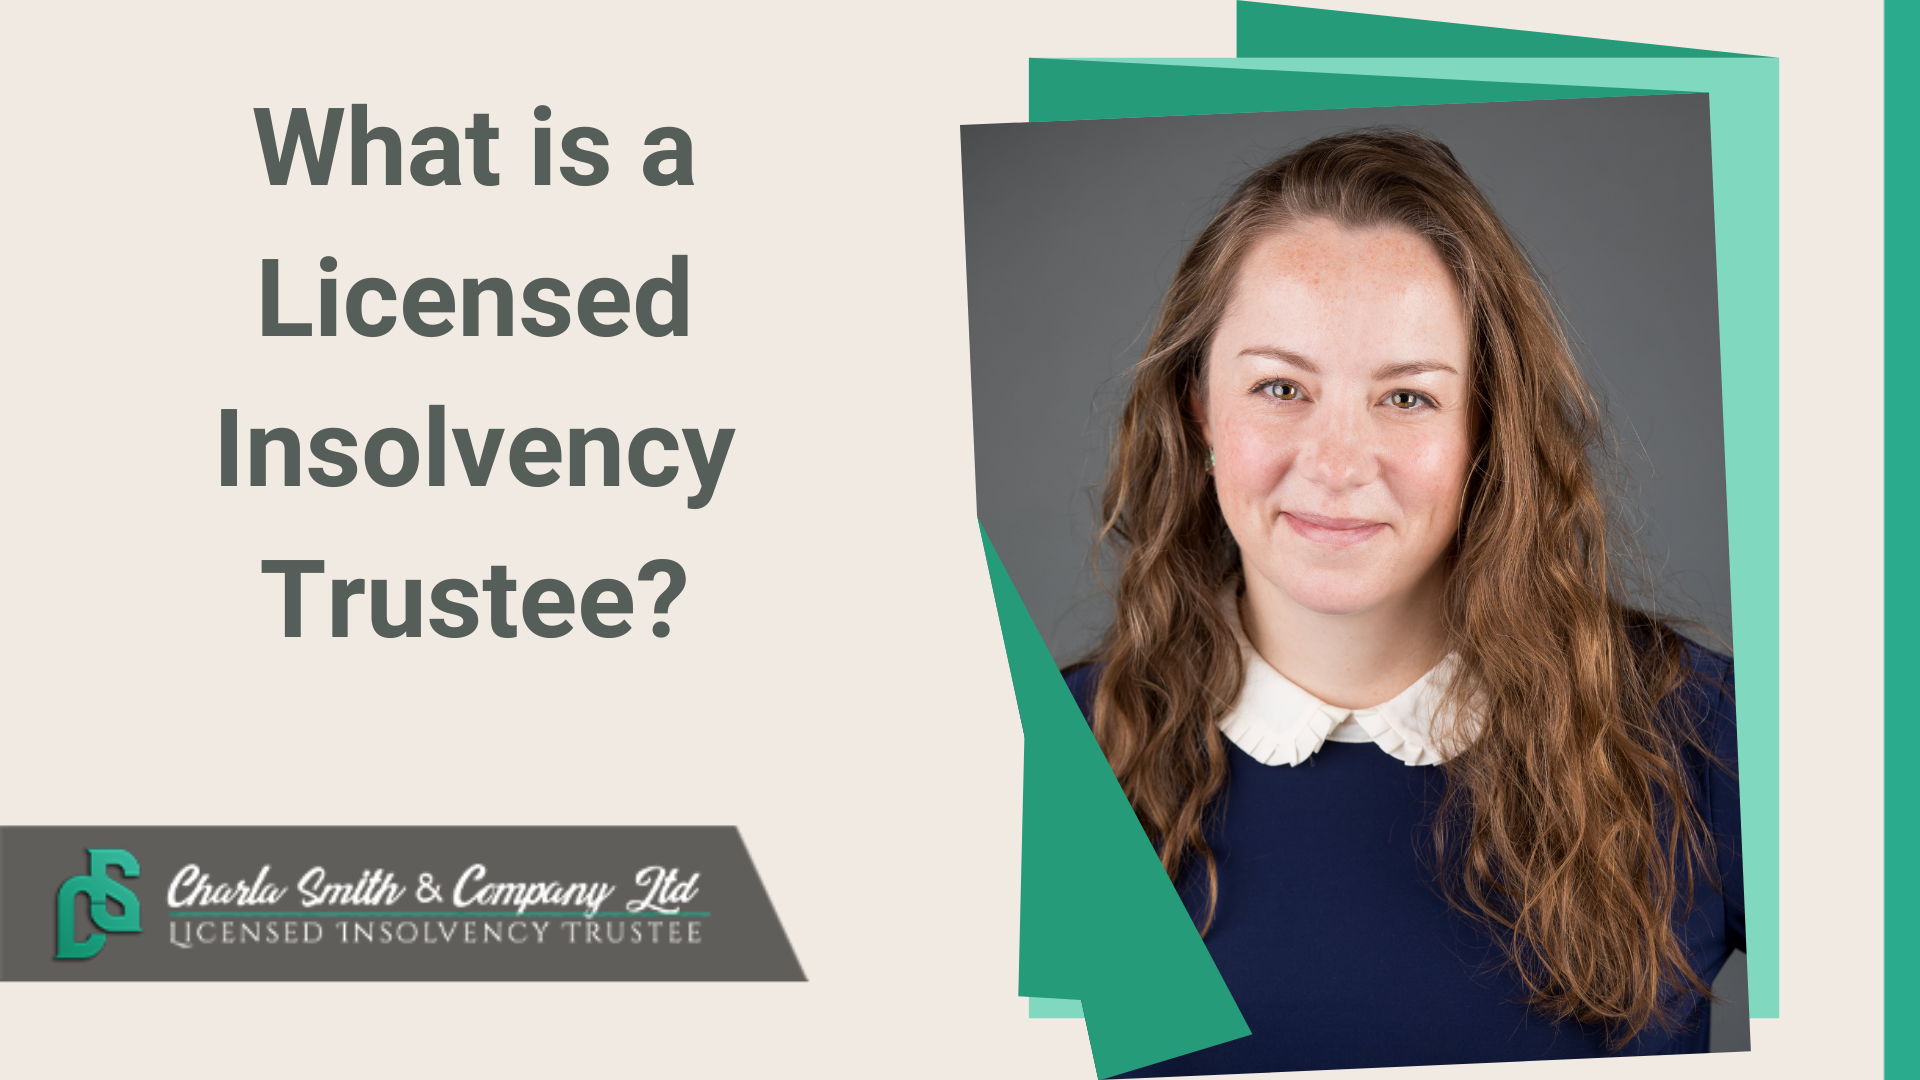 What is a Licensed Insolvency Trustee?